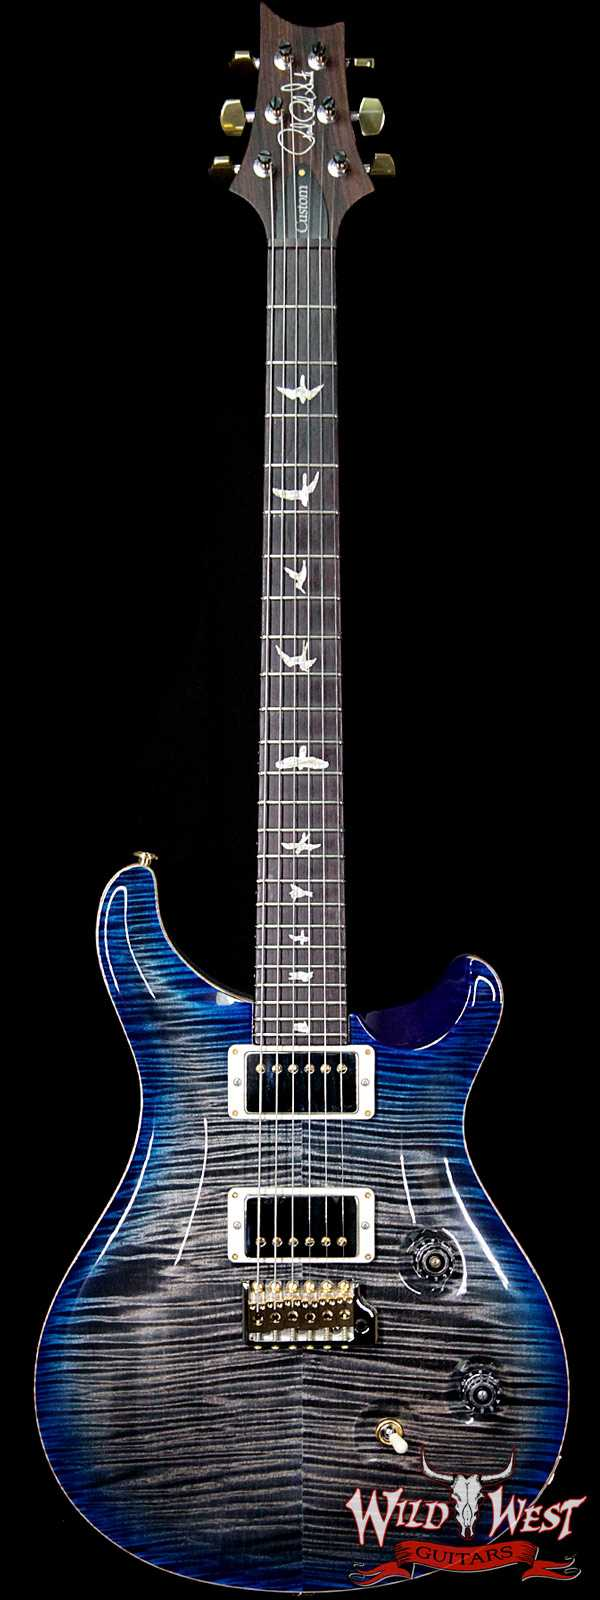 PRS Wood Library 10 Top Custom 24 Korina Neck with Cocobolo Fingerboard Charcoal Blue Burst